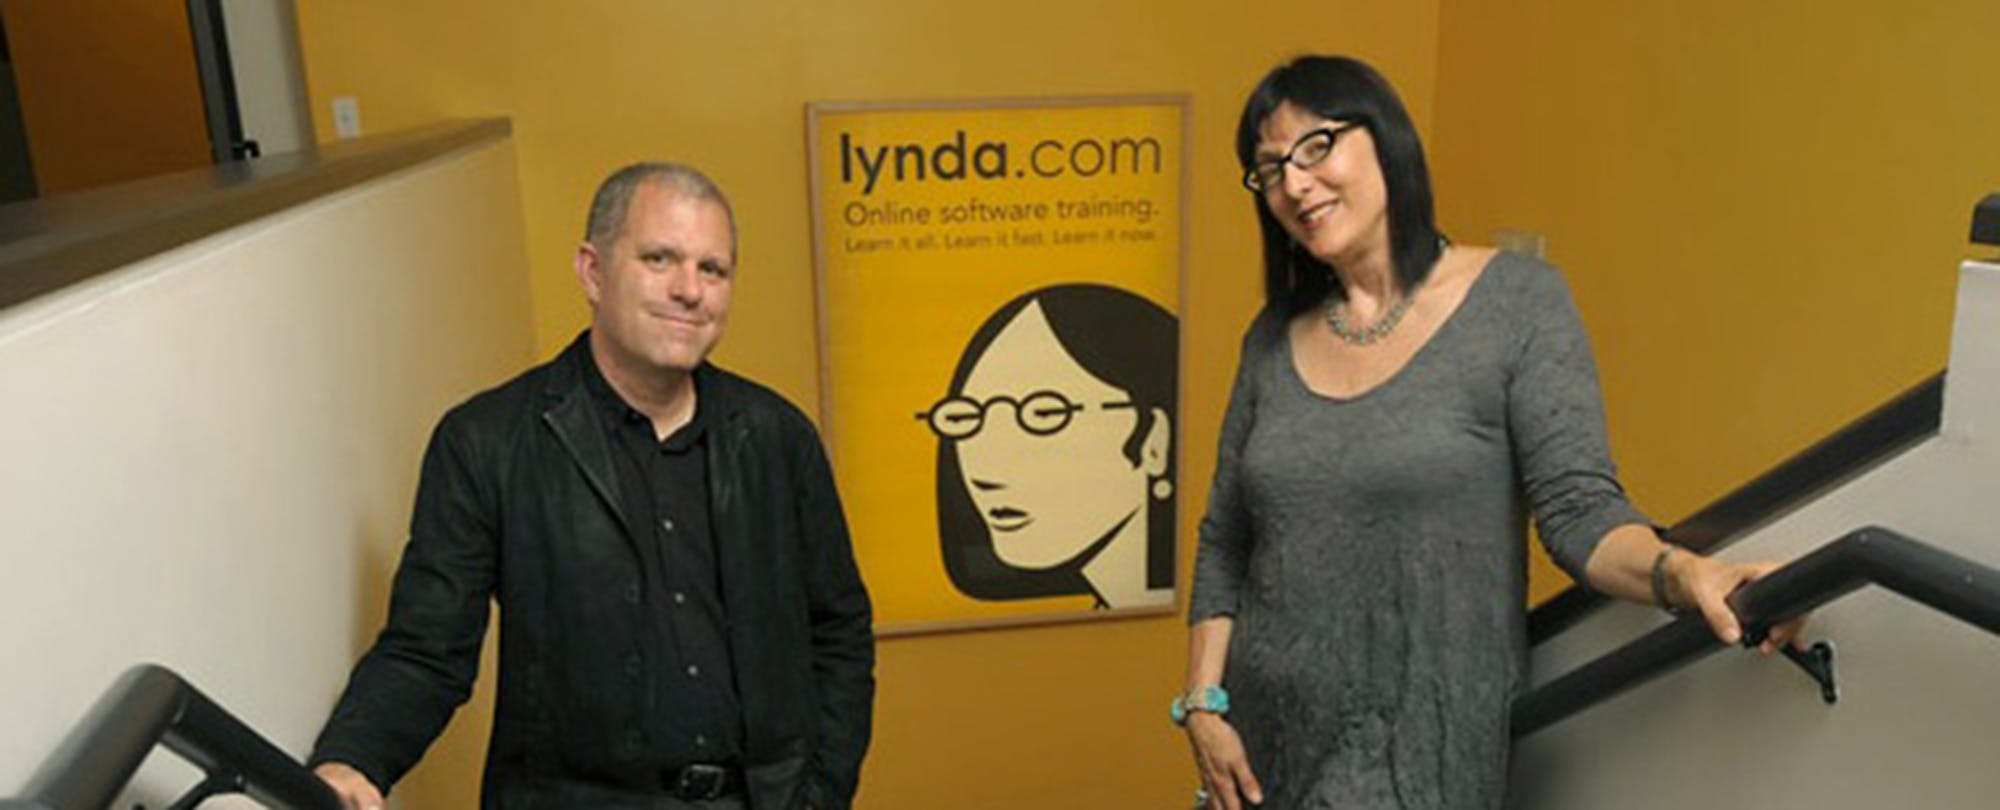 Lynda.com Gets Seriously LinkedIn